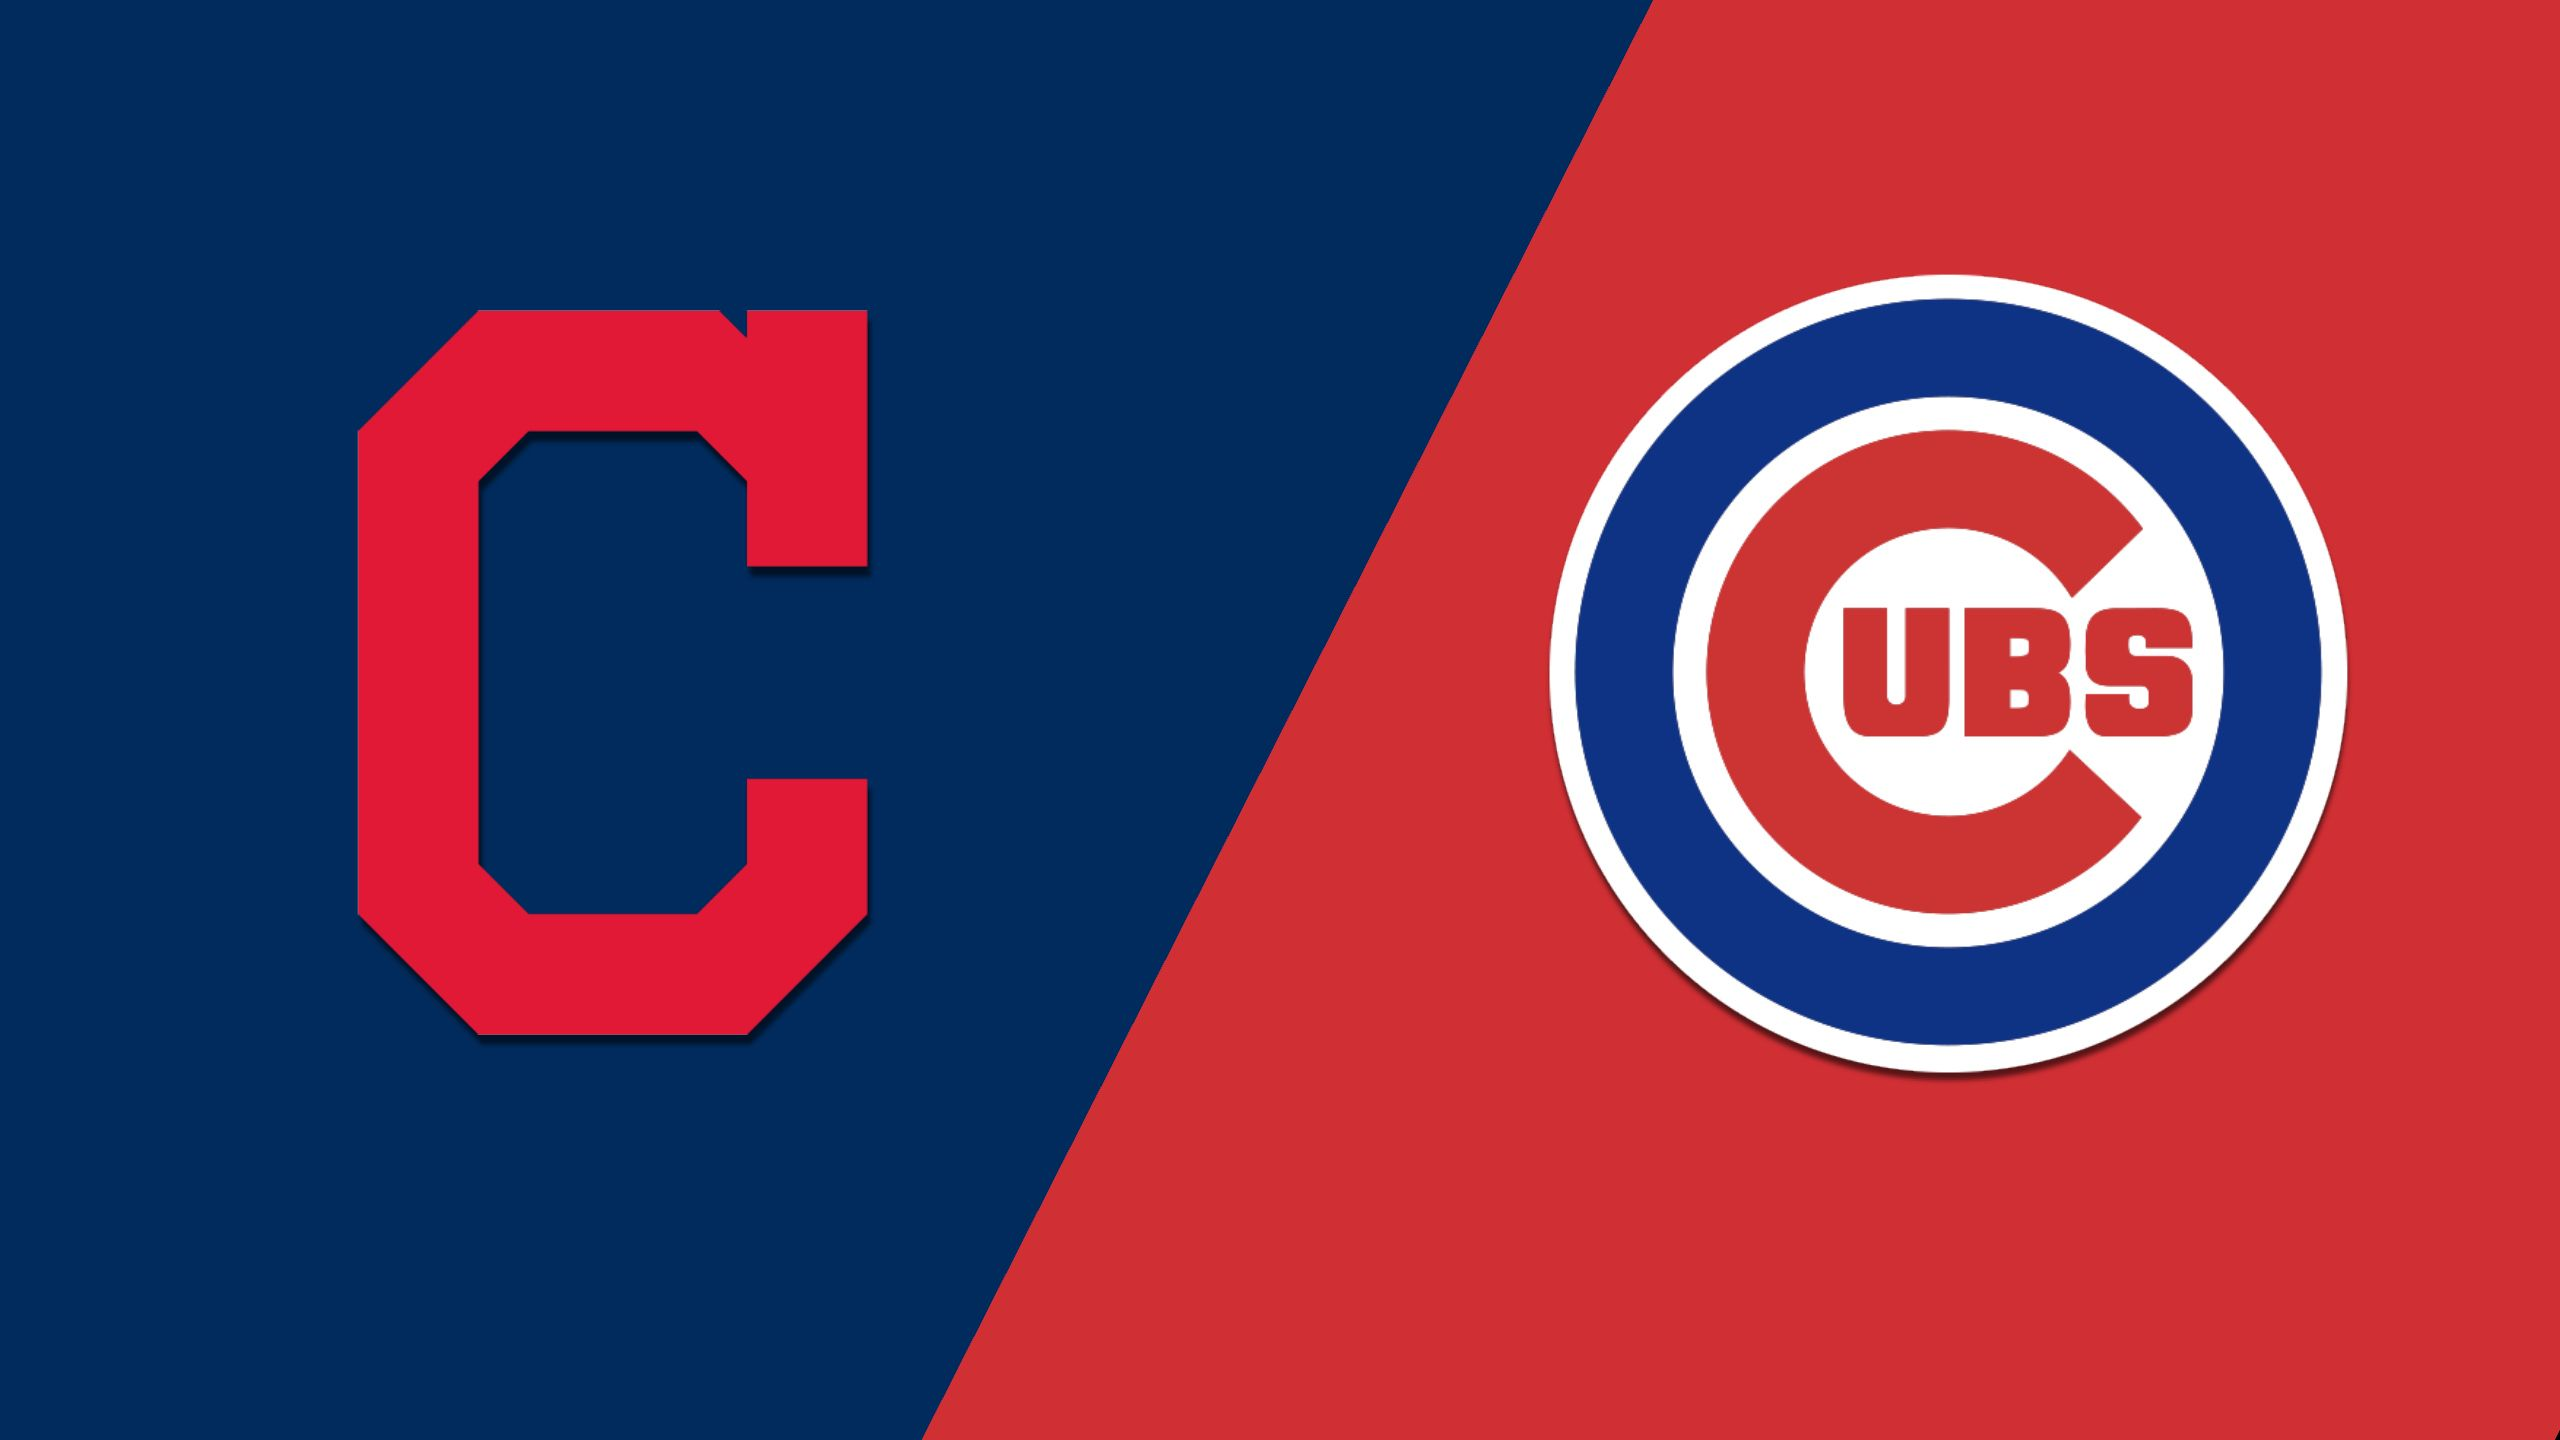 Cleveland Indians vs. Chicago Cubs